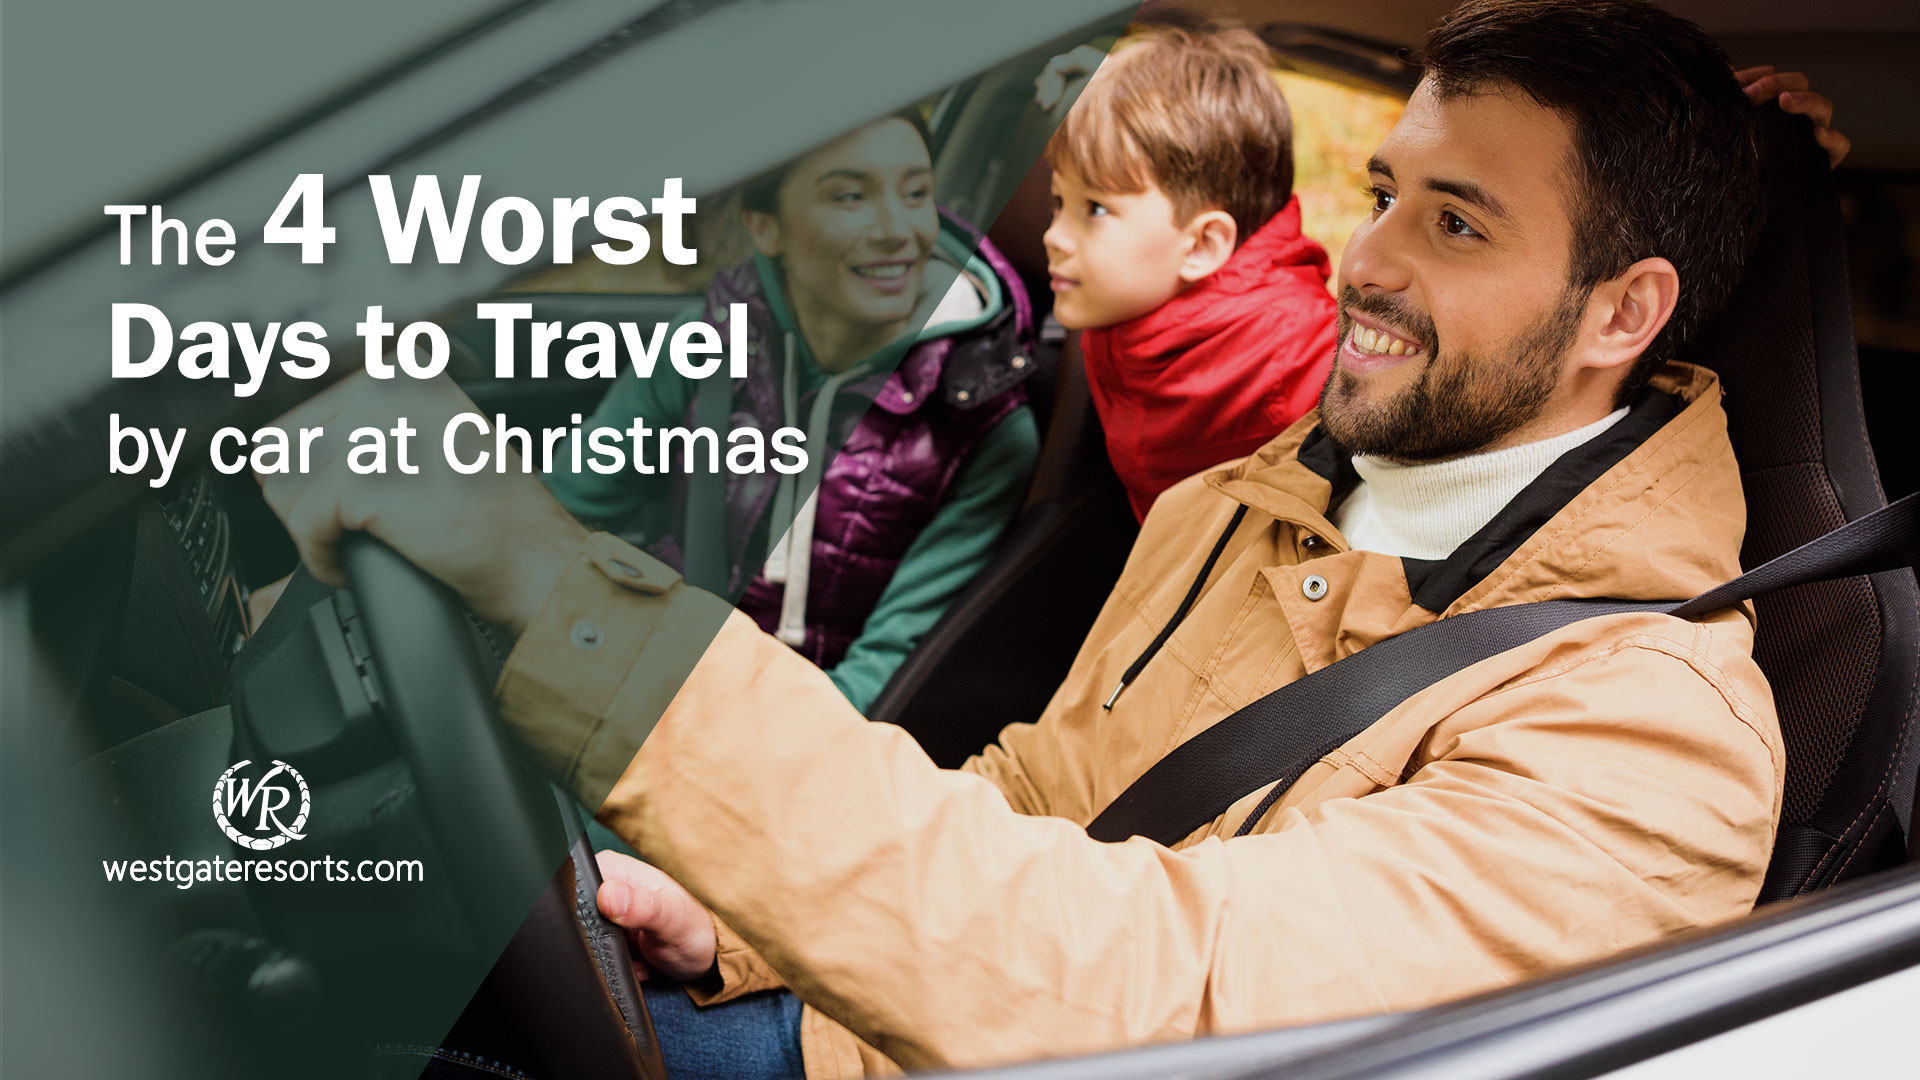 Worst Days To Travel By Car At Christmas 2020 The 4 Worst Days to Travel by Car at Christmas 2019 | Holiday